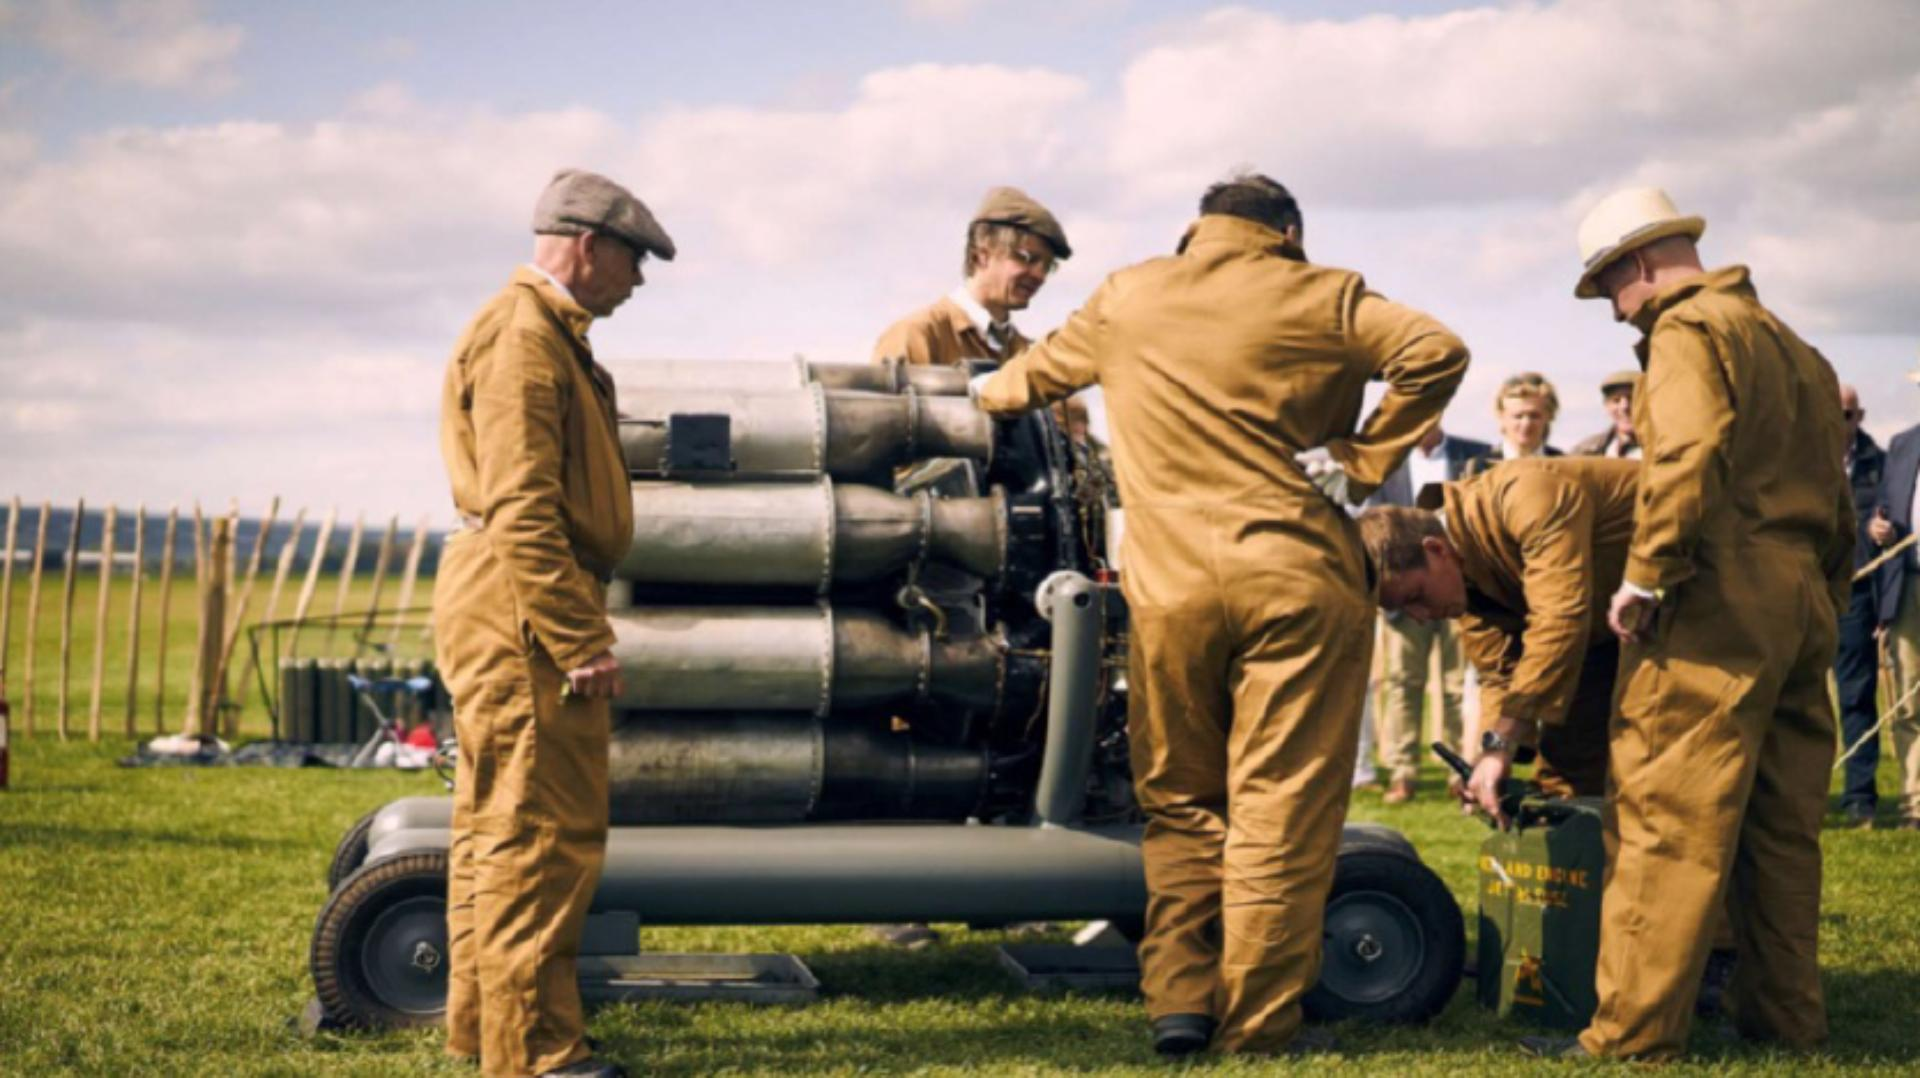 The restored Whittle jet engine on display at the Goodwood Revival event